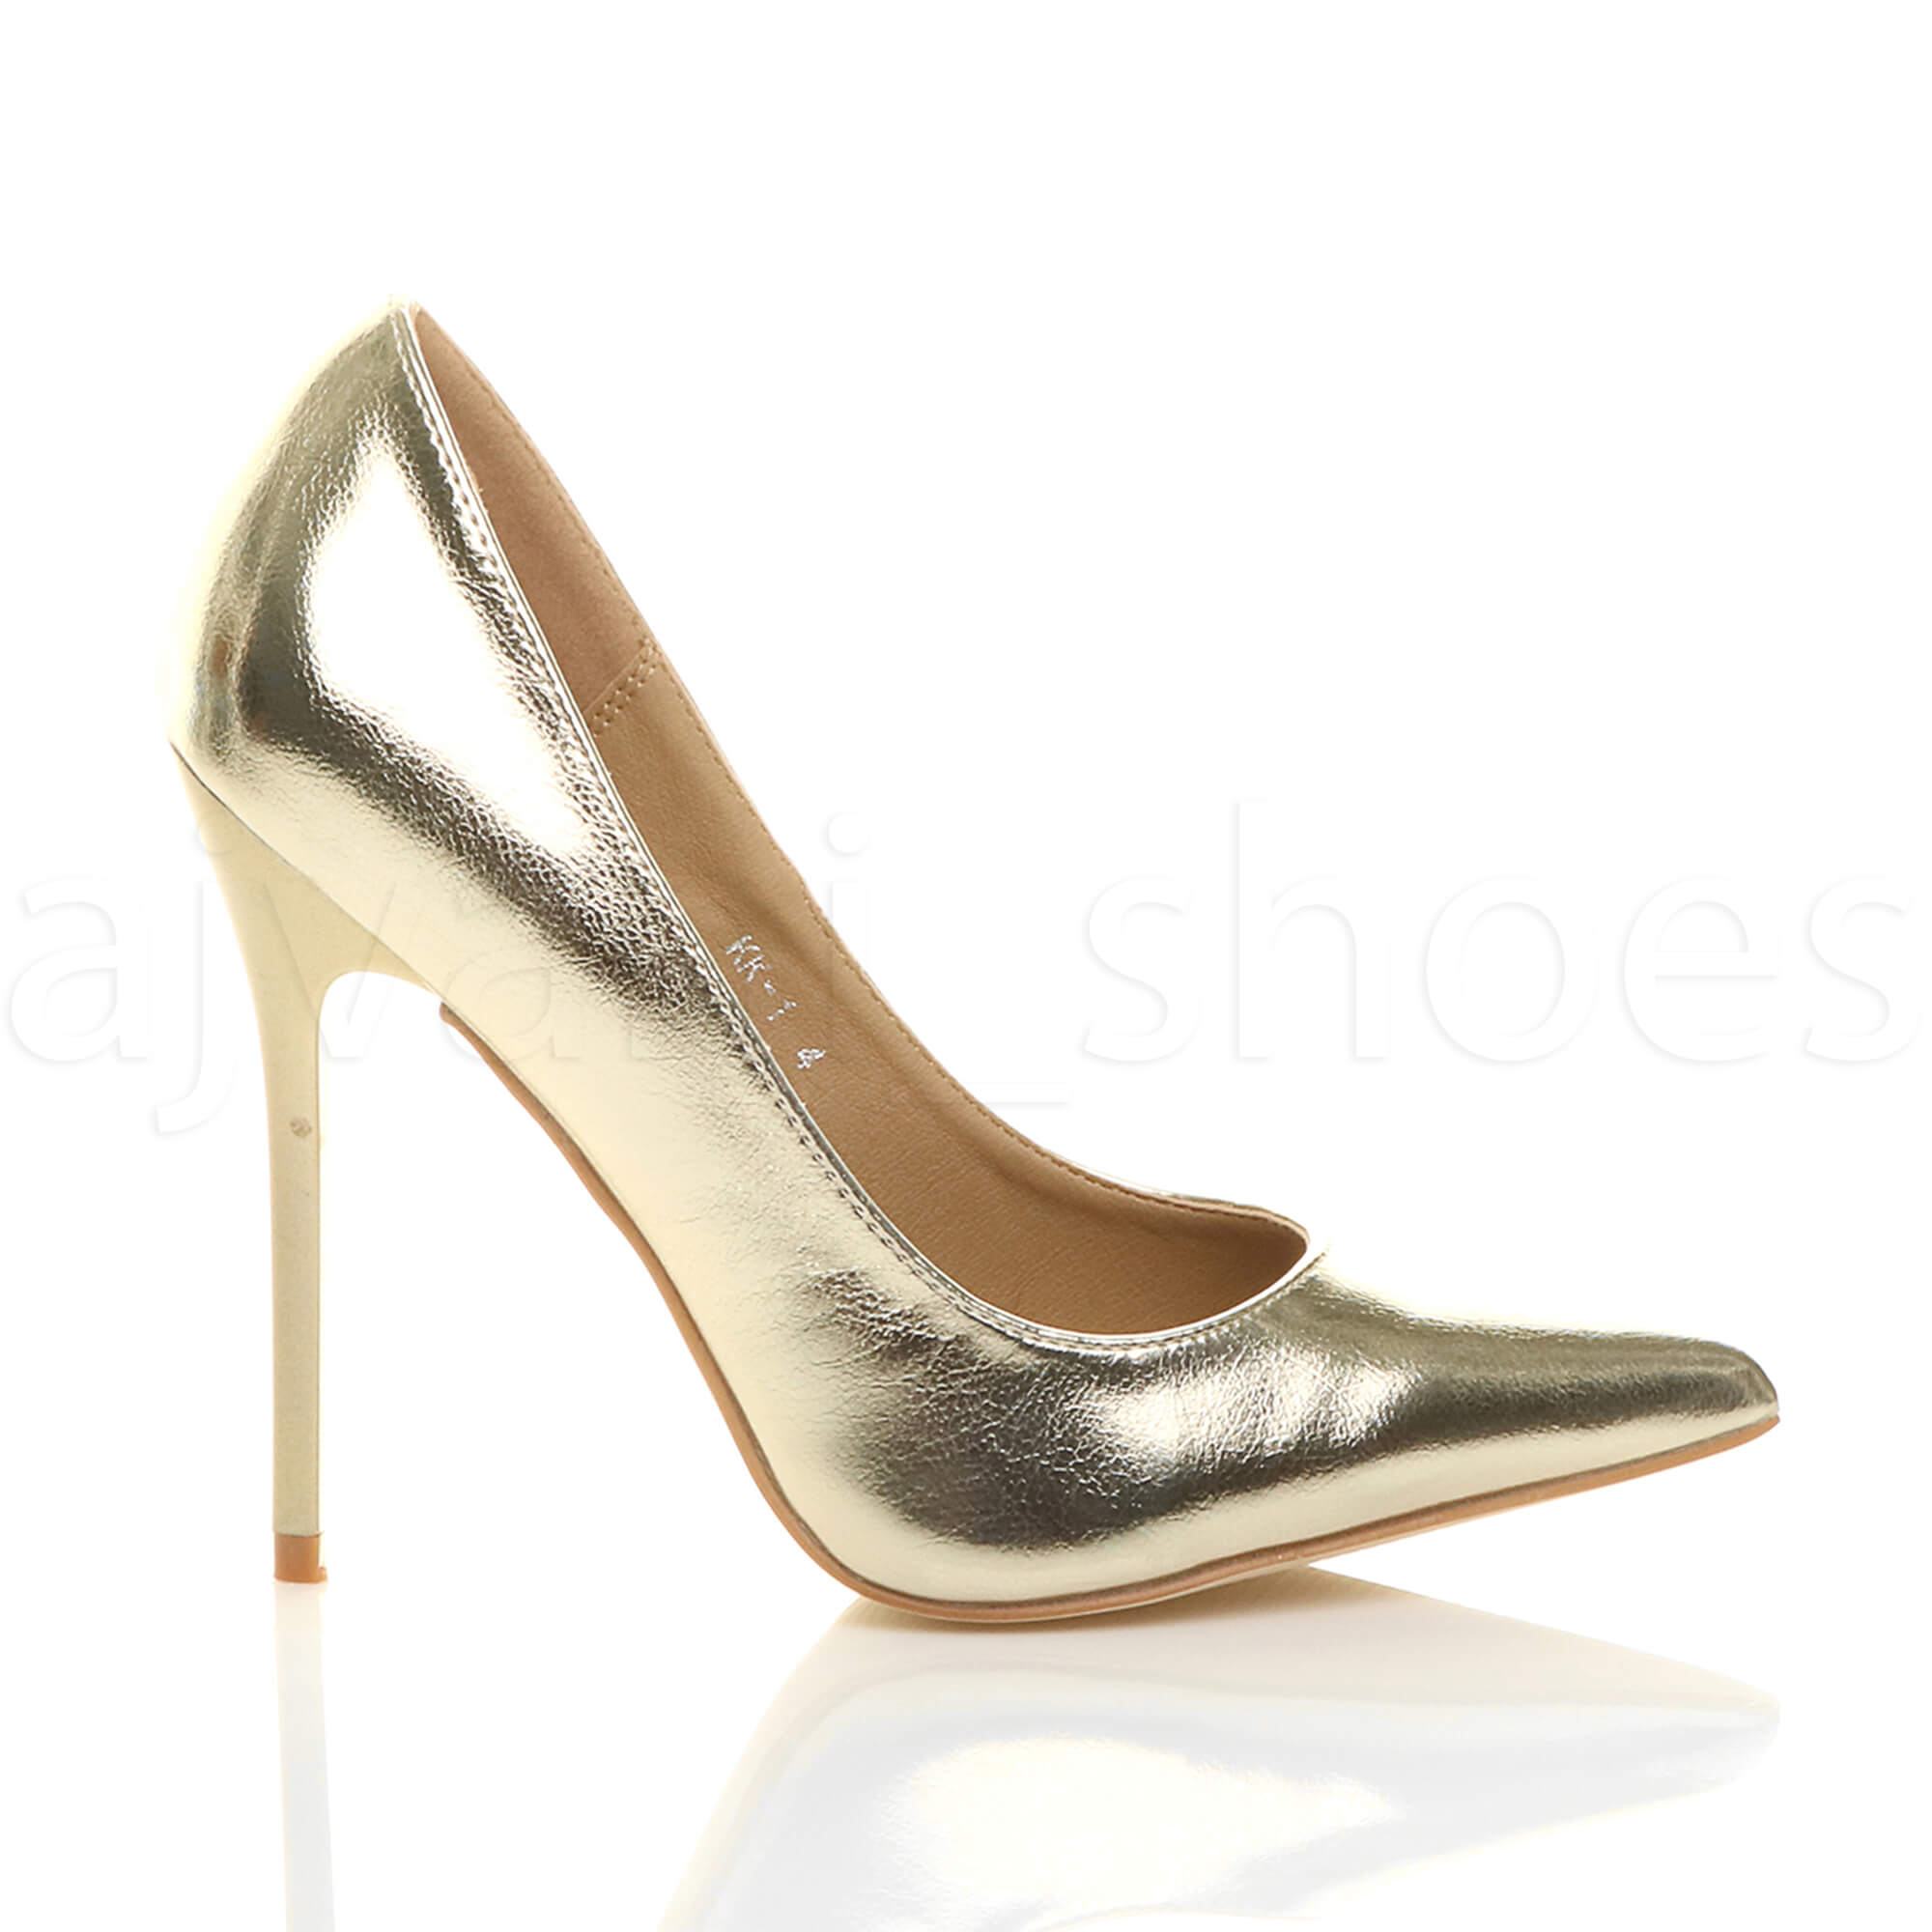 WOMENS-LADIES-HIGH-HEEL-POINTED-CONTRAST-COURT-SMART-PARTY-WORK-SHOES-PUMPS-SIZE thumbnail 66